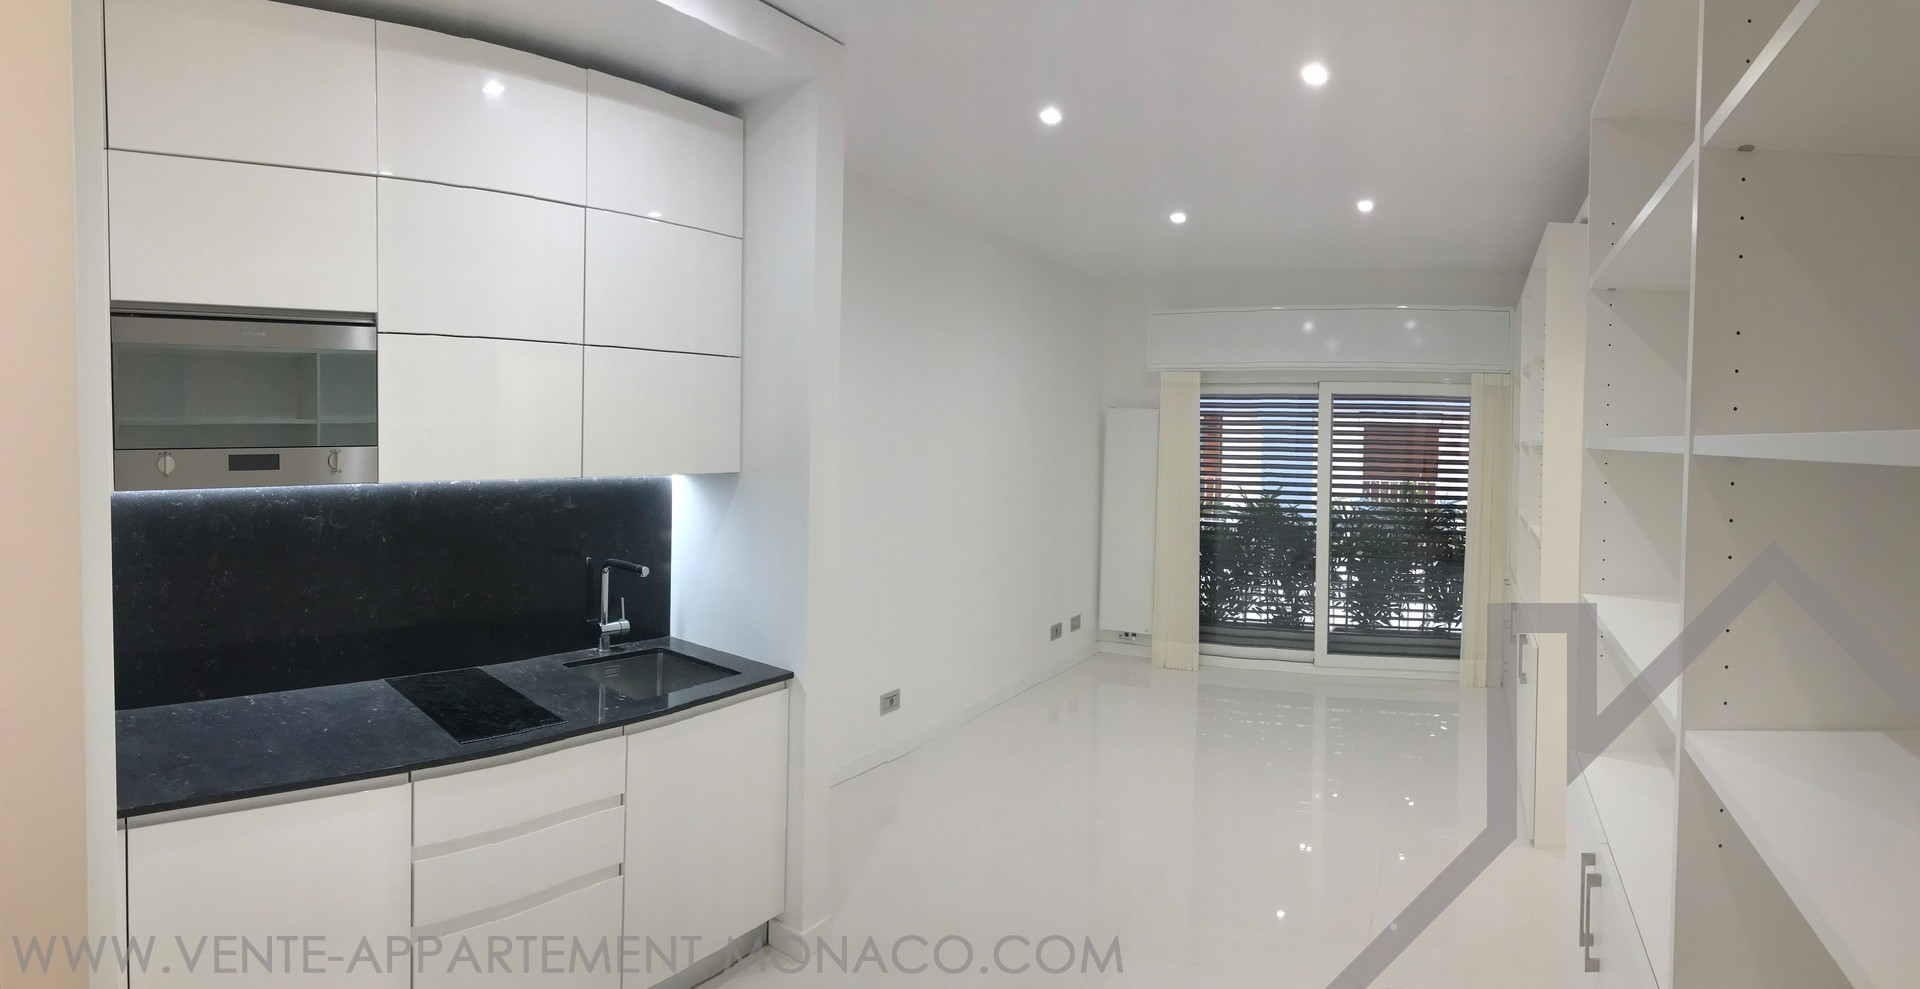 RUSCINO 2 ROOMS NEW MIXED-USE - Properties for sale in Monaco